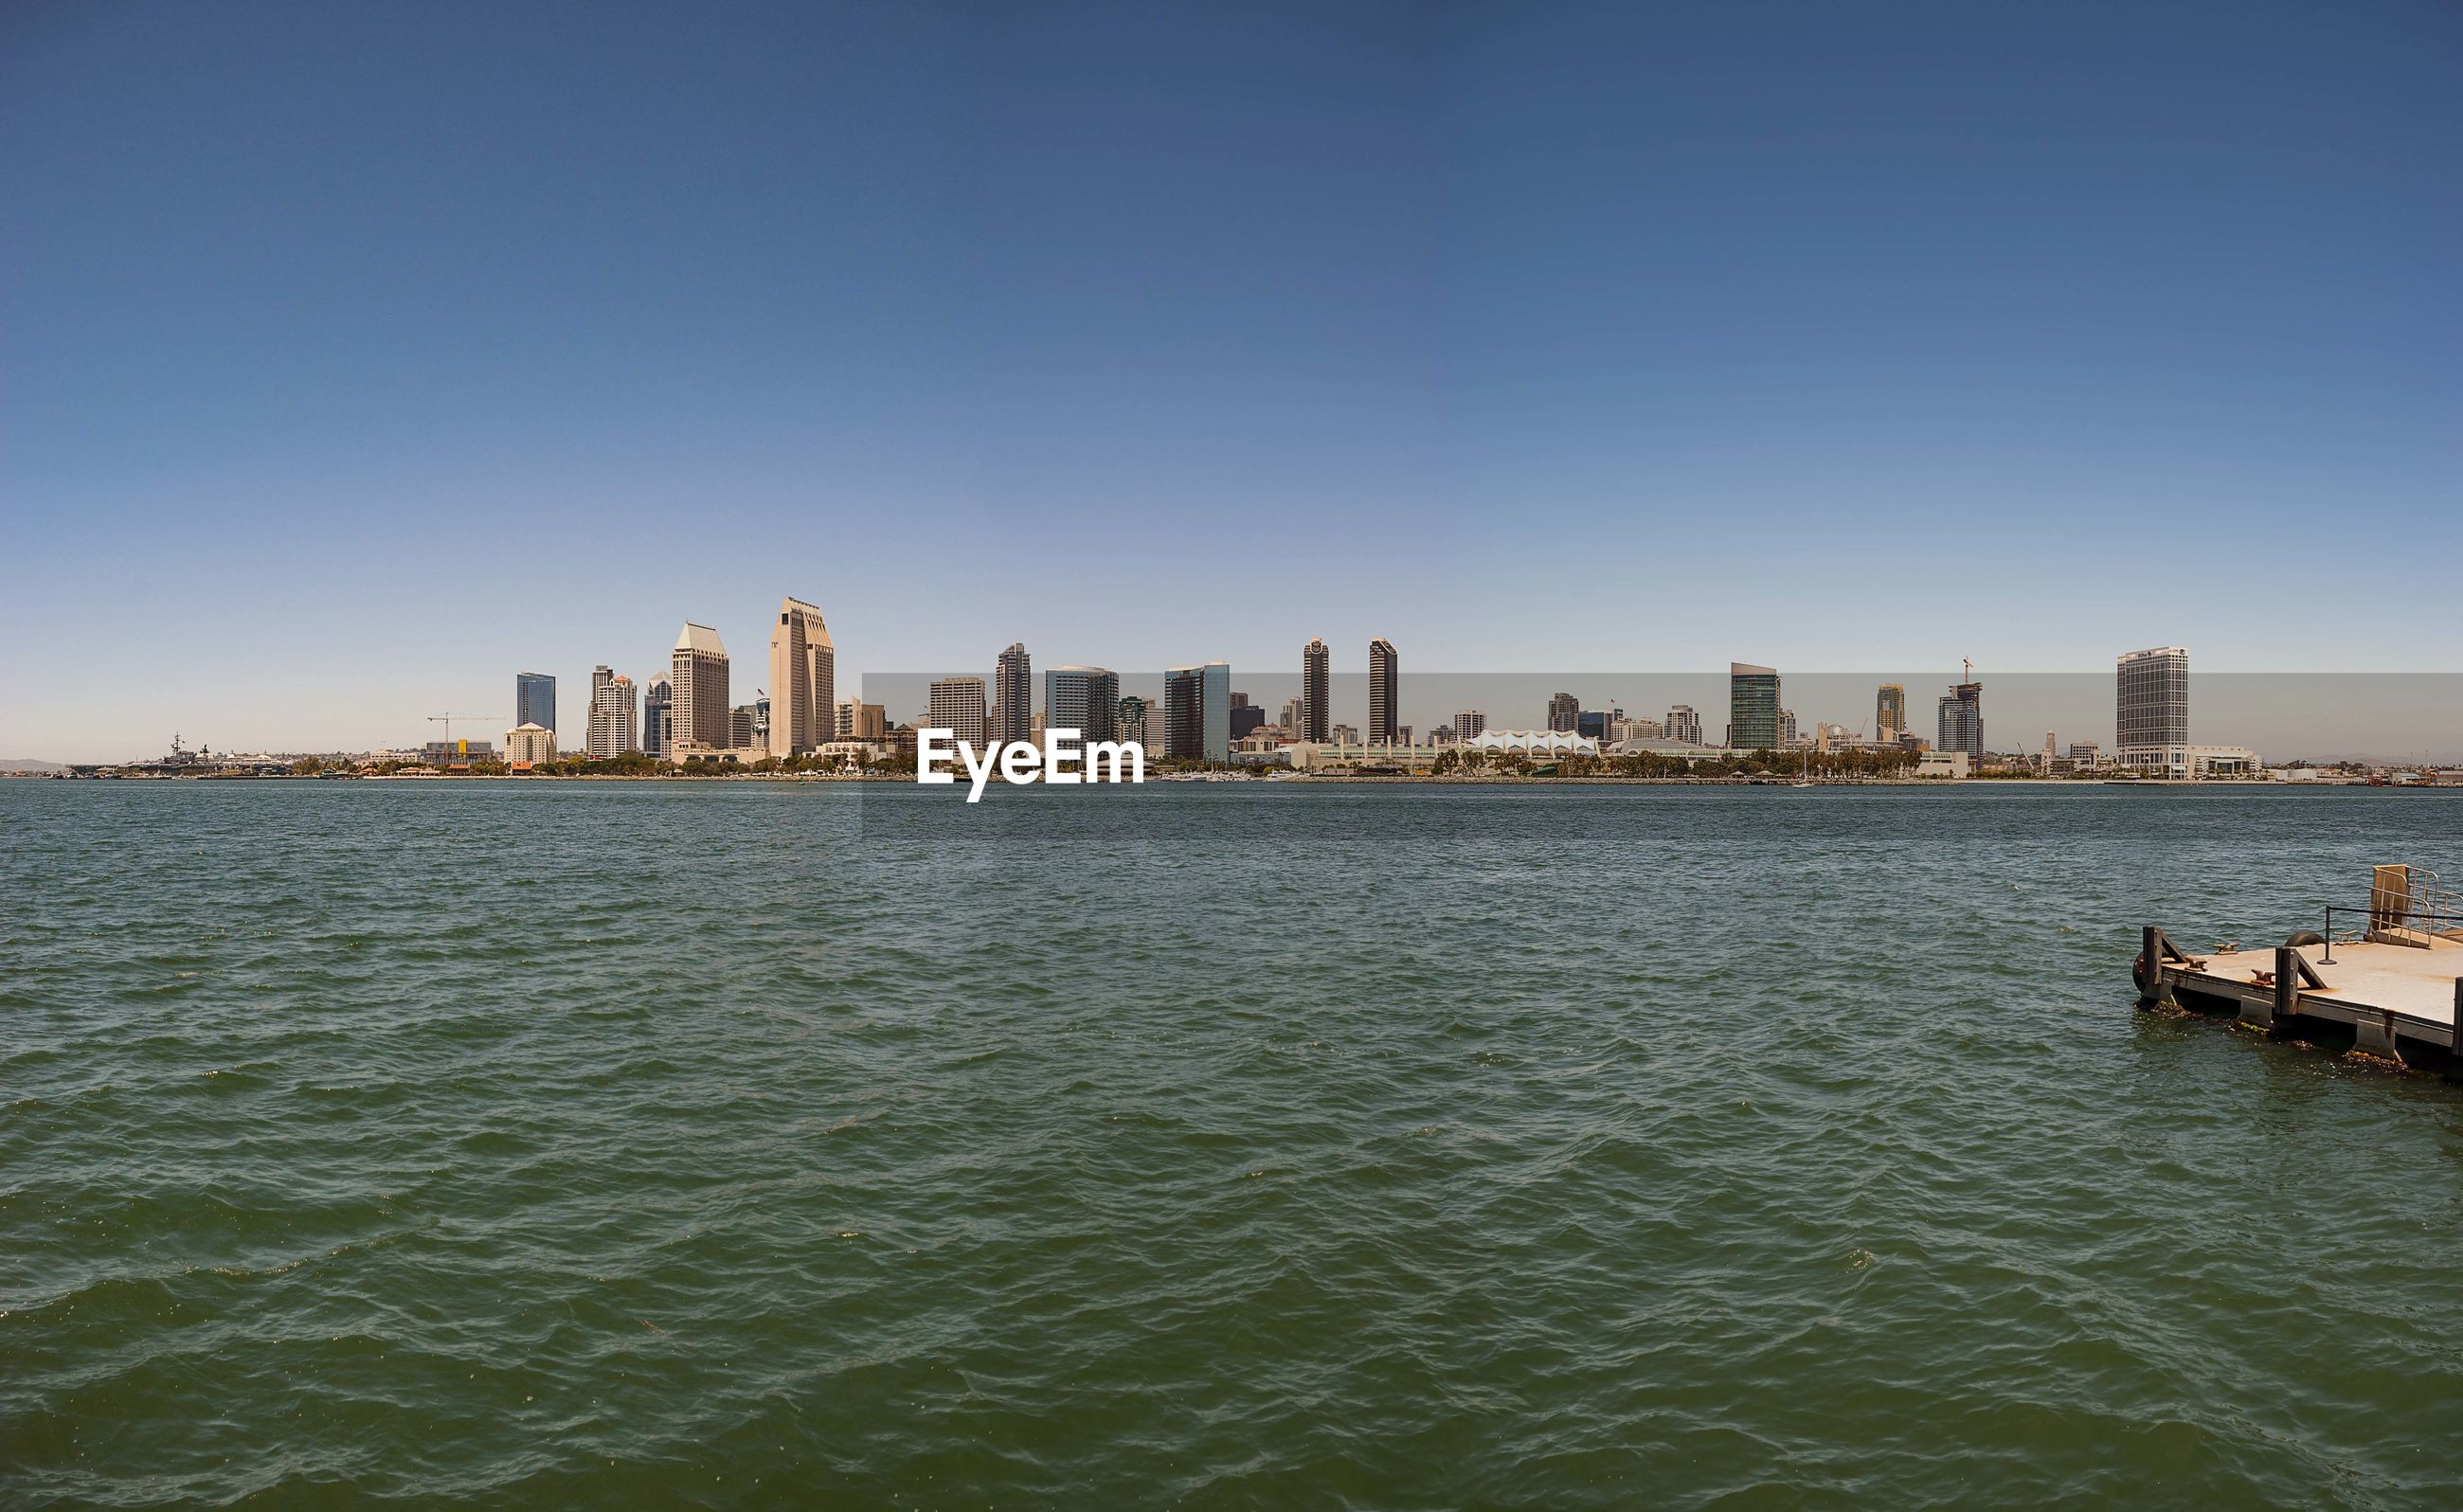 SEA WITH CITY IN BACKGROUND